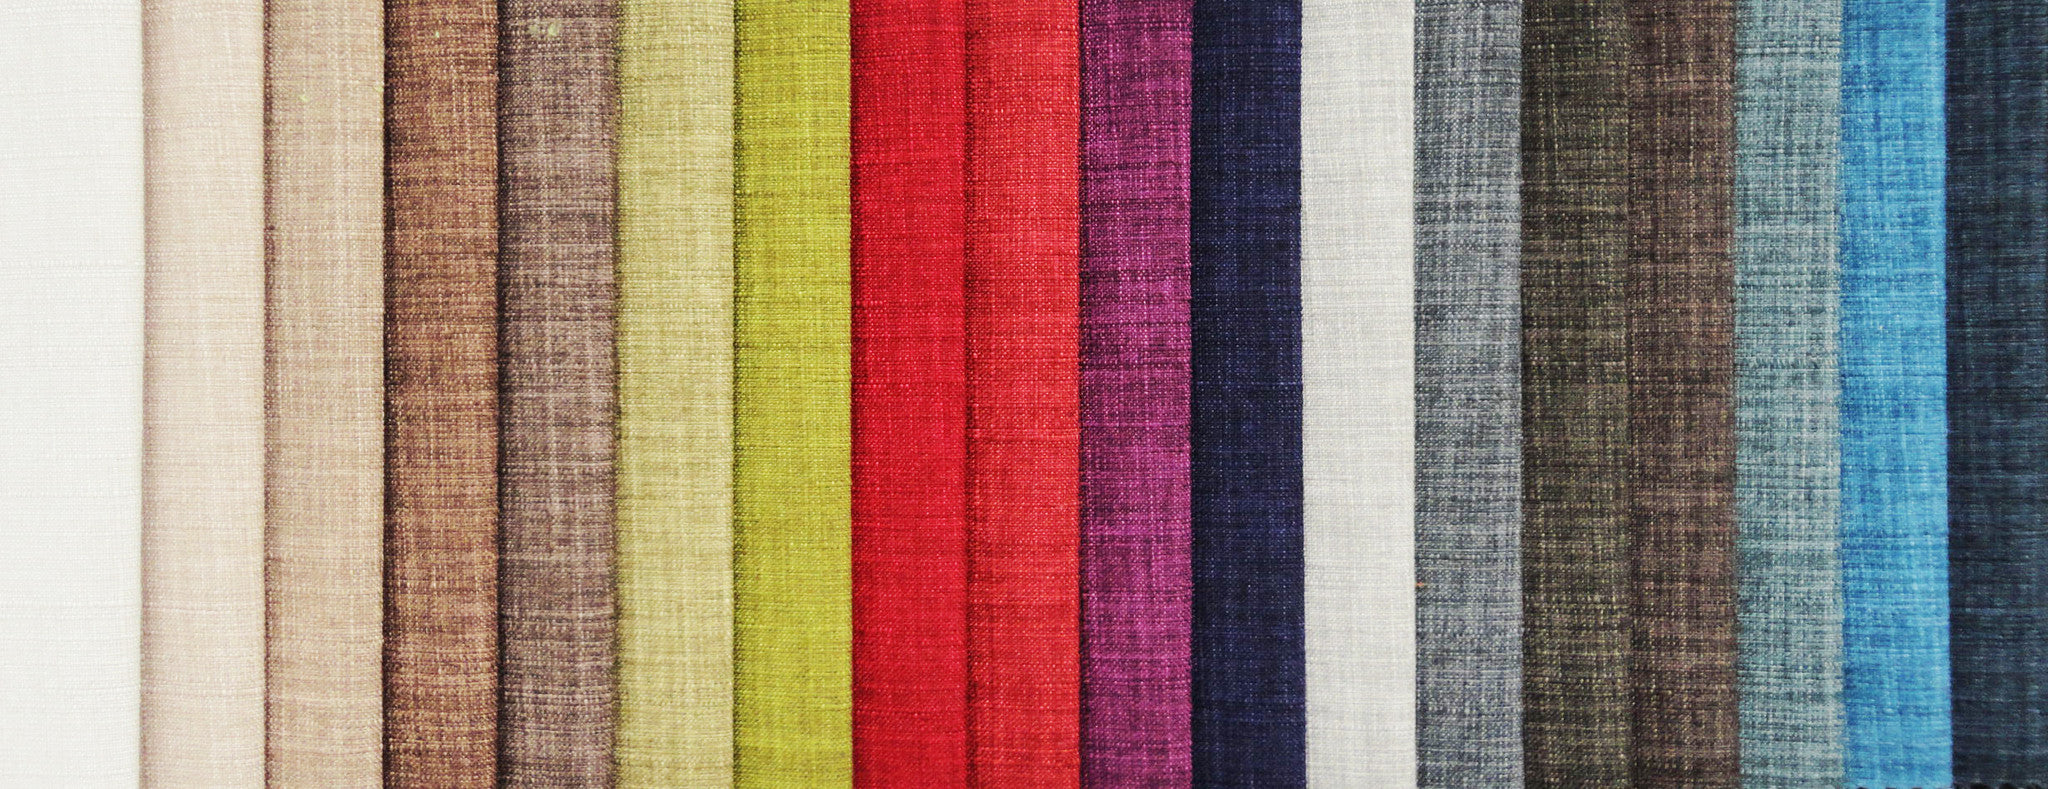 Q-kipedia: Learn about Summer's favourite fabric - Linen